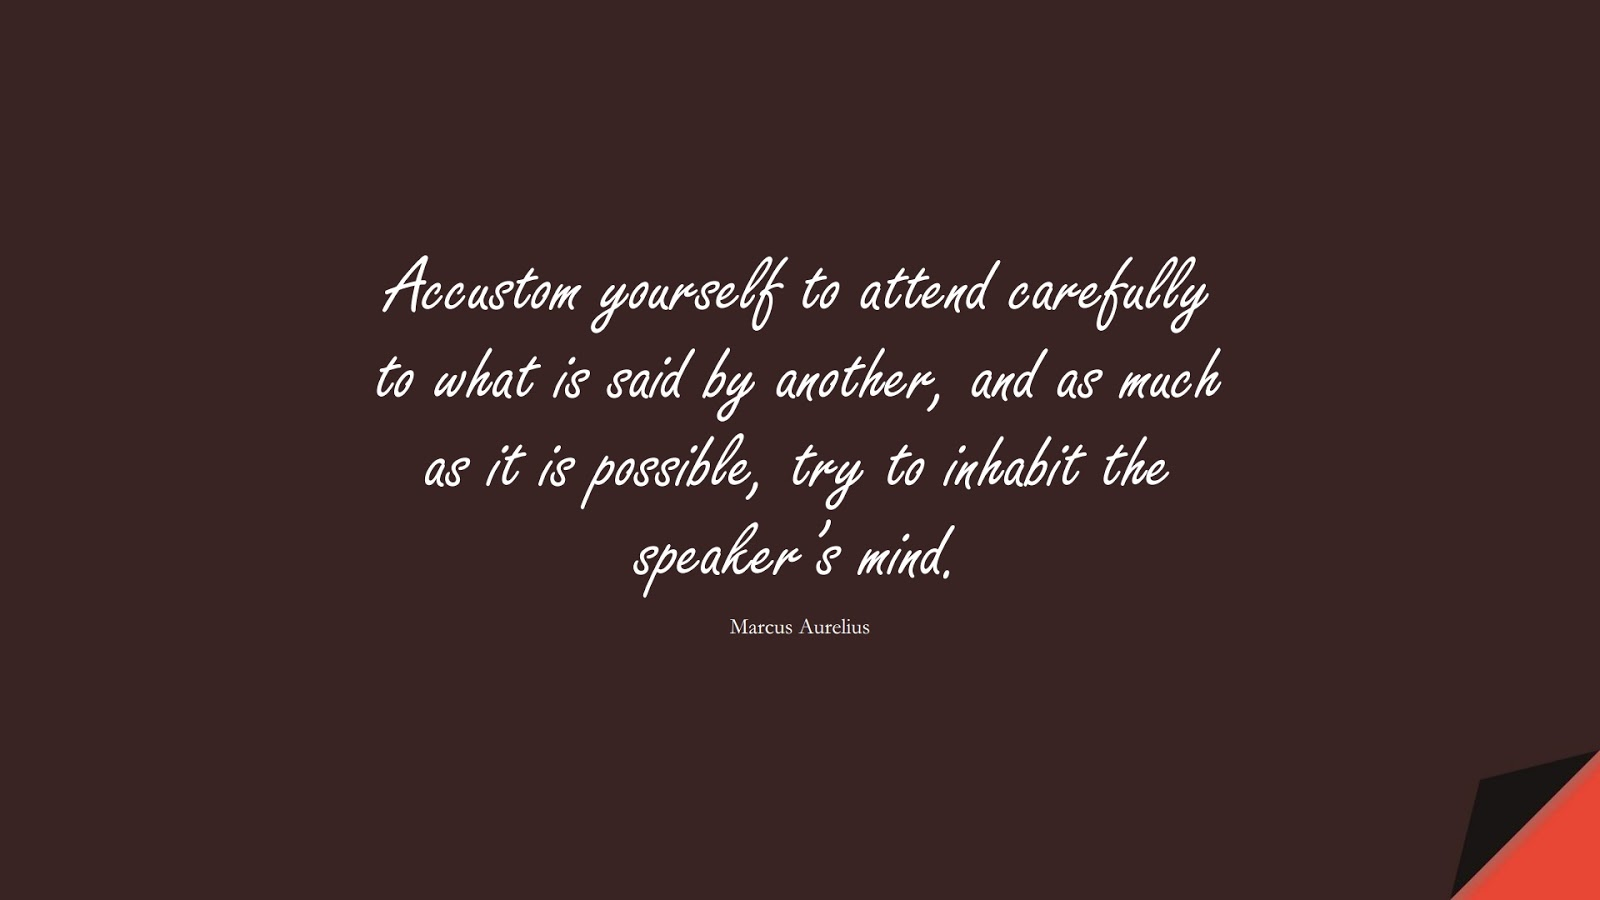 Accustom yourself to attend carefully to what is said by another, and as much as it is possible, try to inhabit the speaker's mind. (Marcus Aurelius);  #MarcusAureliusQuotes